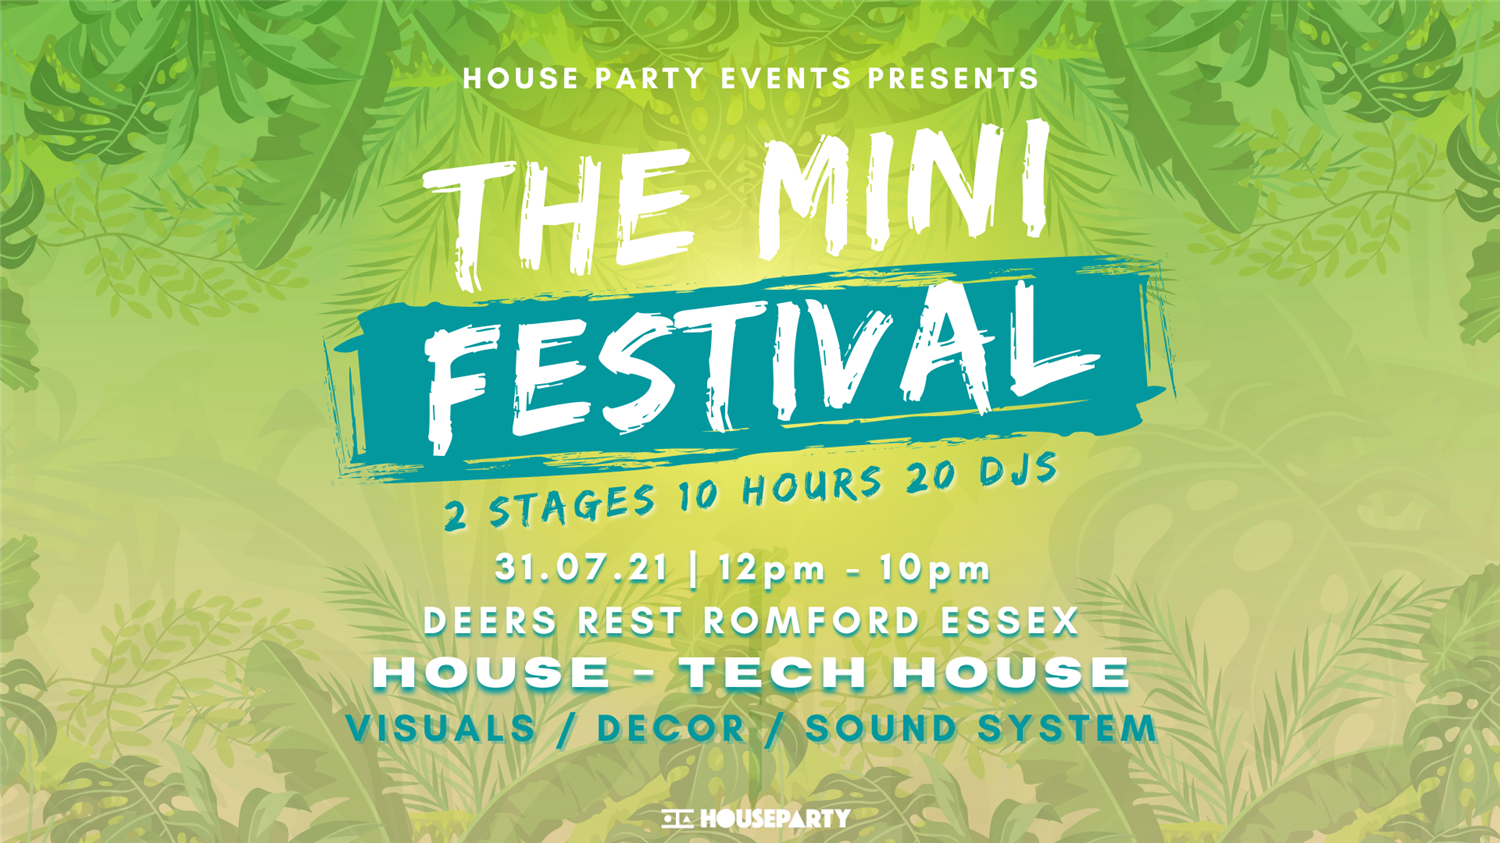 The Mini Festival Essex  on jul. 31, 12:00@Deers Rest - Buy tickets and Get information on House Party Europe Ltd